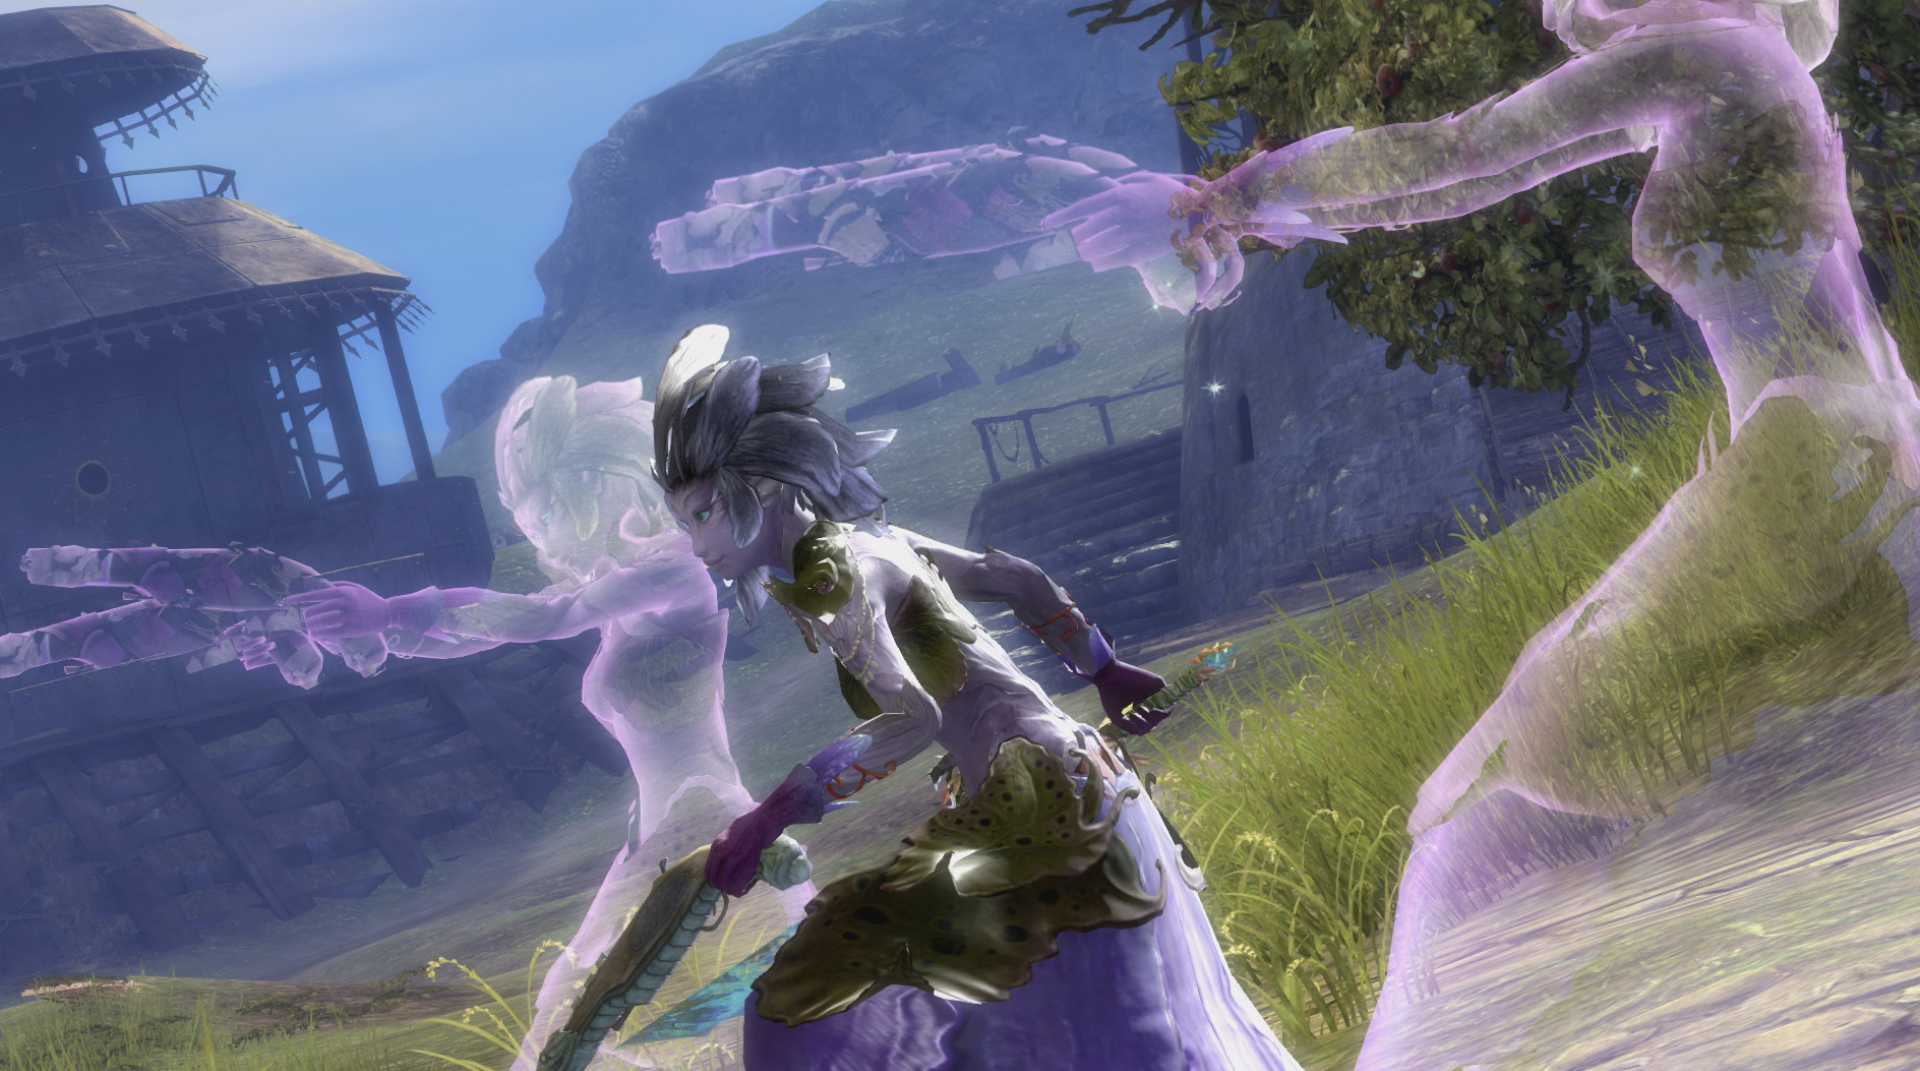 https://i2.wp.com/wiki.guildwars2.com/images/d/dd/Mesmer_with_phantasms.jpg